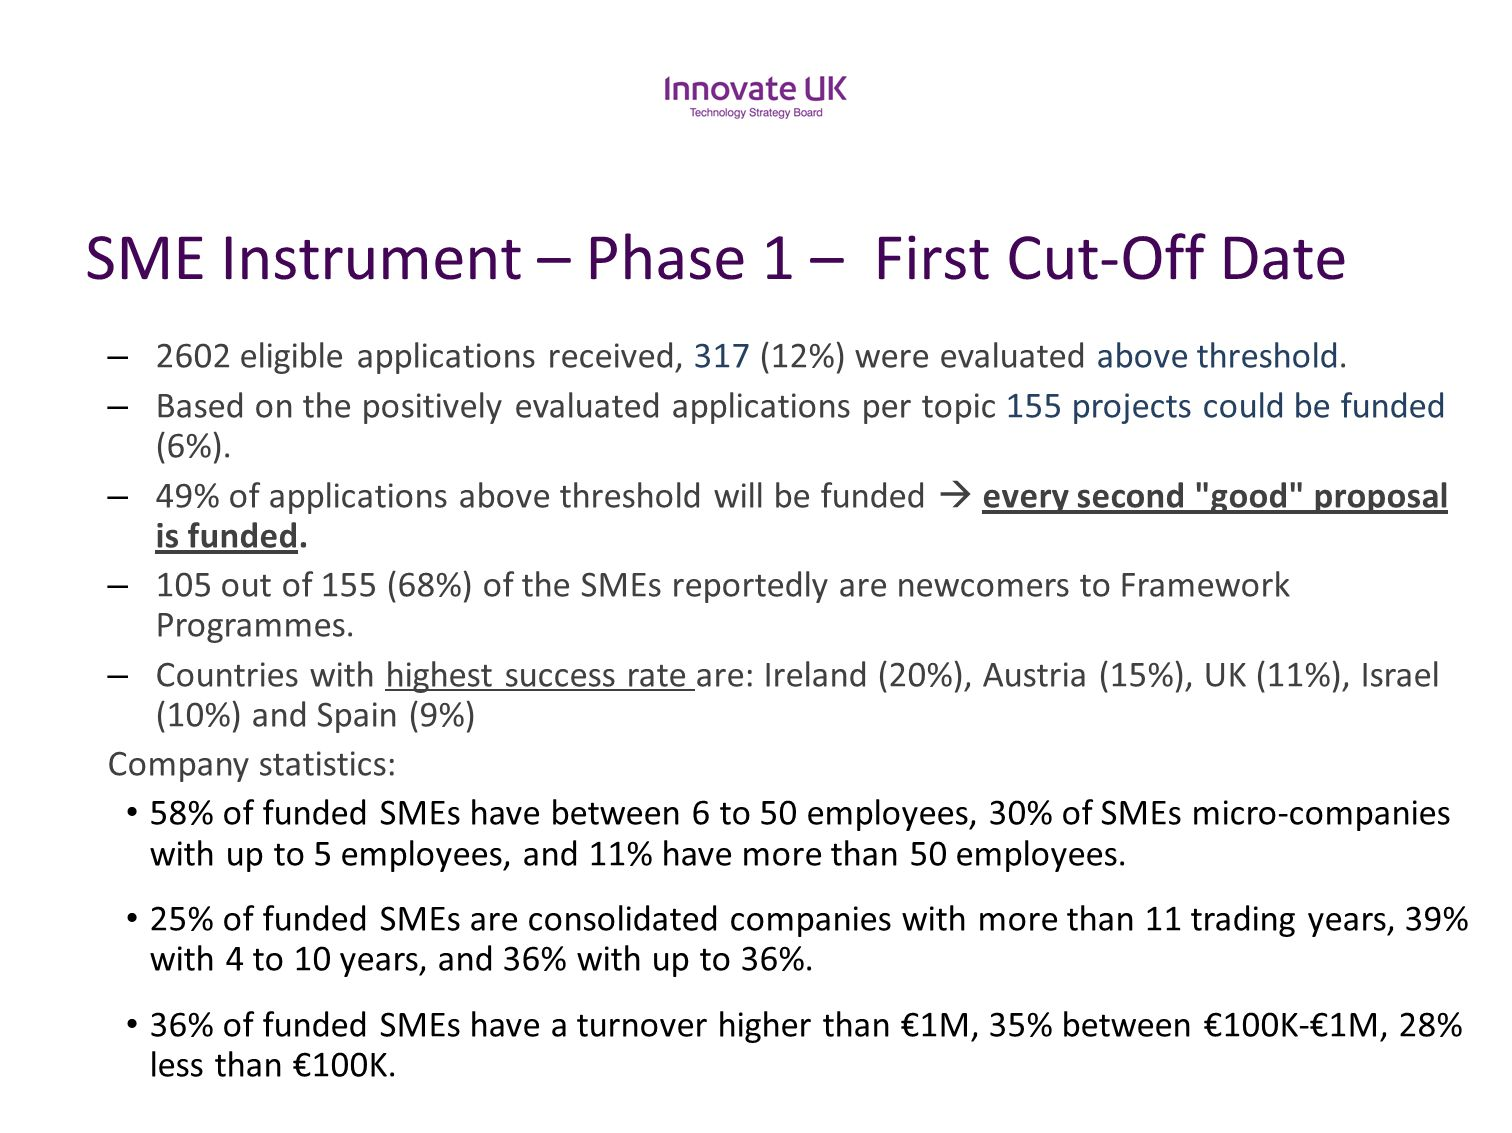 SME Instrument – Phase 1 – First Cut-Off Date